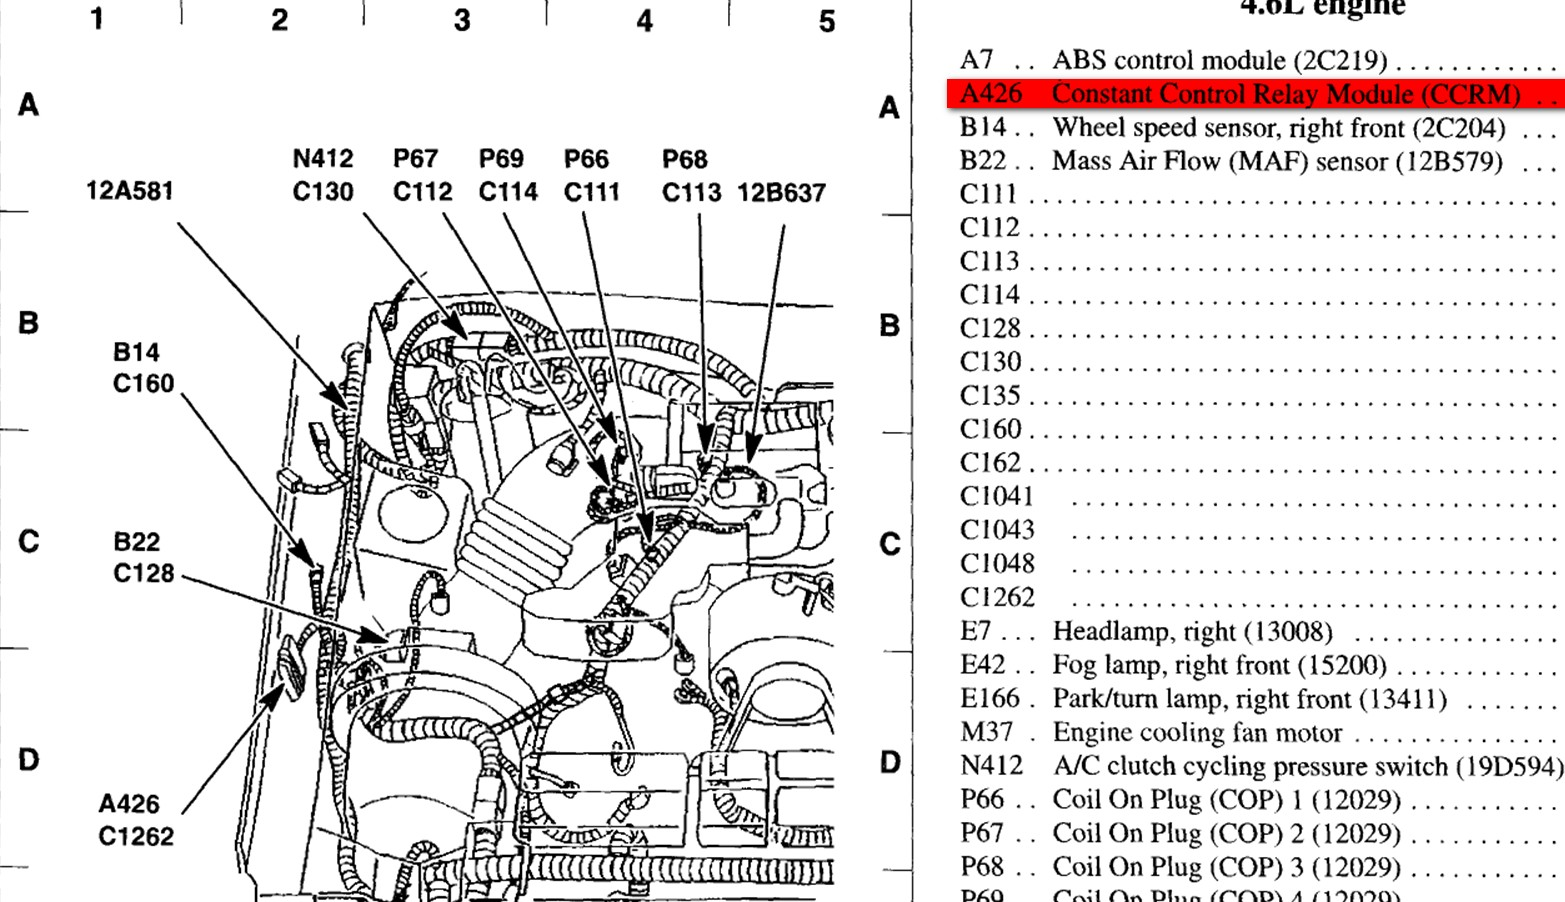 2003 Ford Mustang V6 Engine Diagram 2003 Mustang V6 Engine